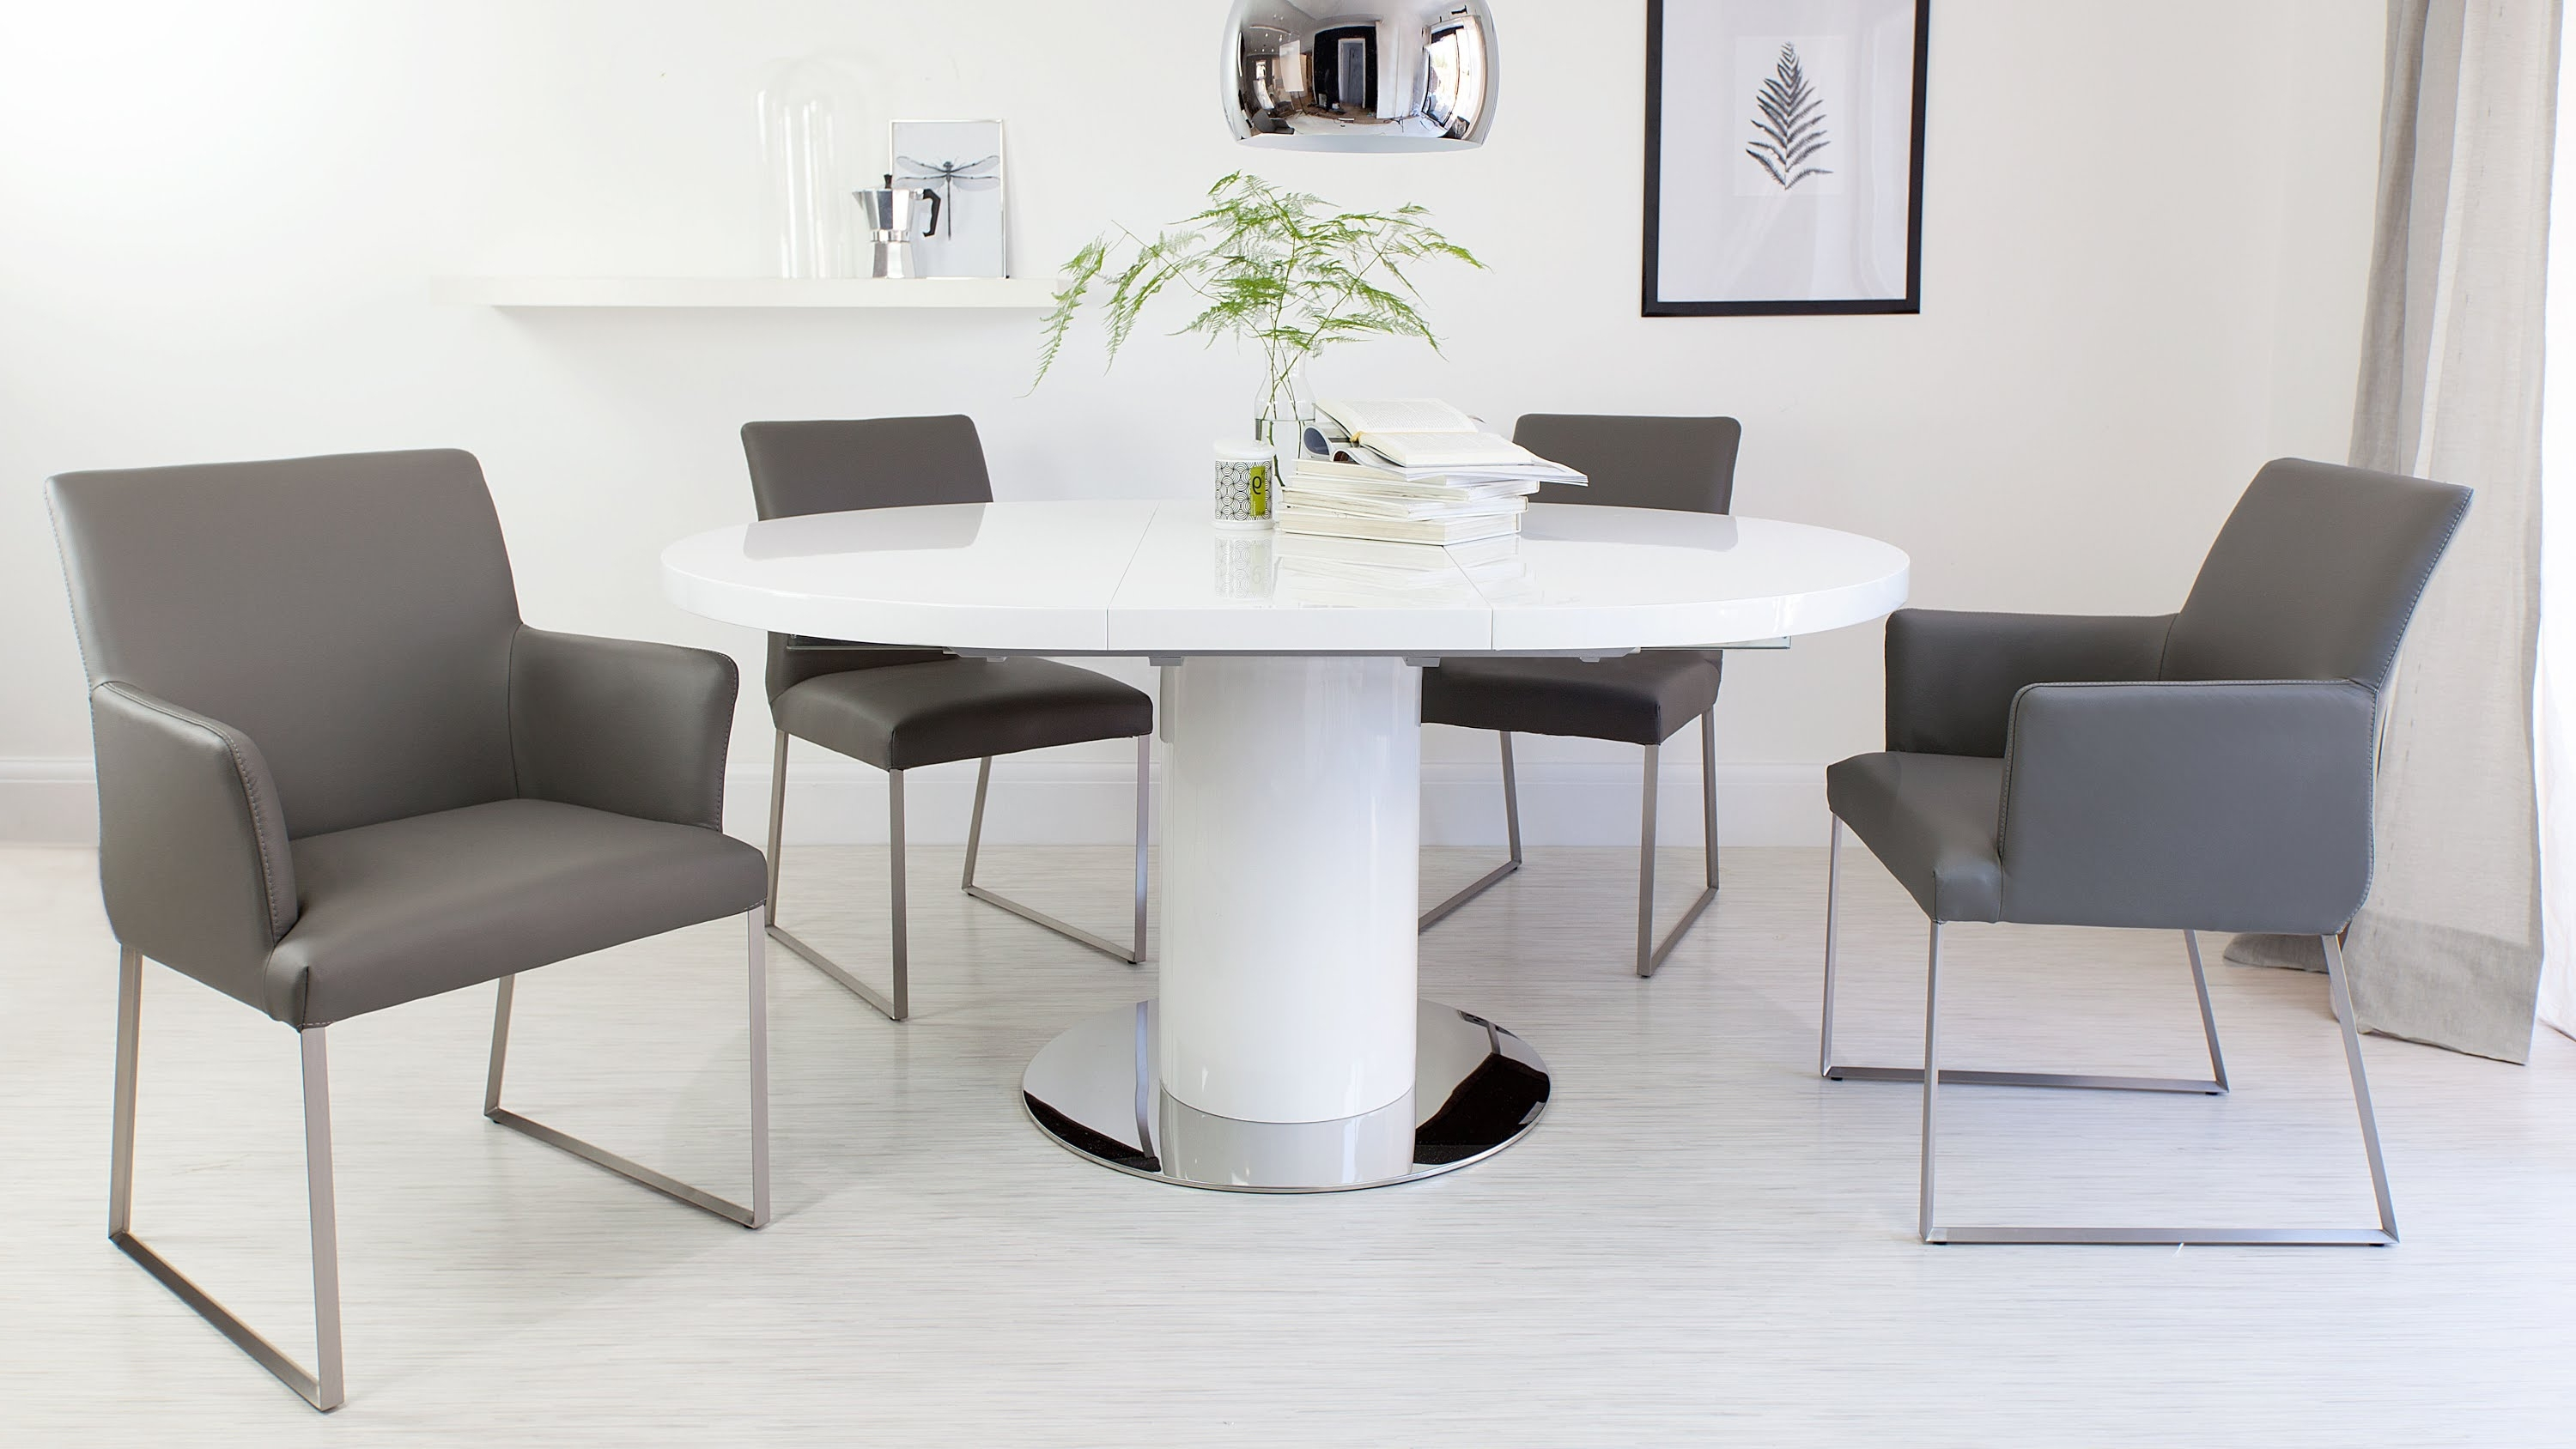 Well Known White Leather Dining Room Chairs Throughout Bewitching White Leather Dining Room Chairs On Art Van Chairs The (View 25 of 25)